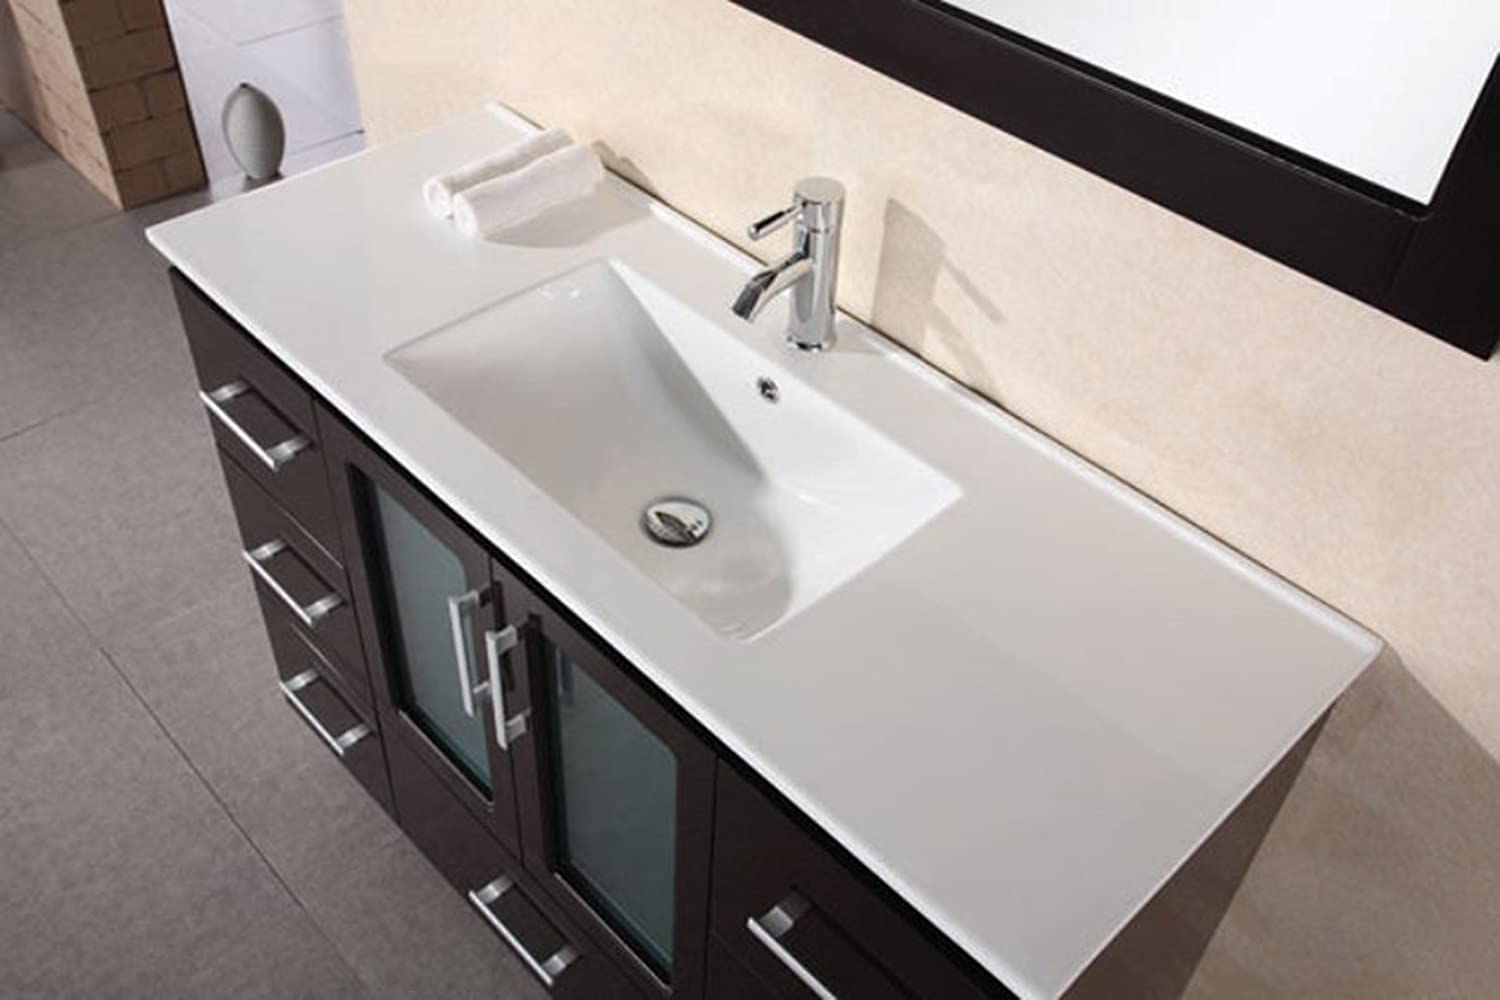 Design Element Stanton Single Drop In Sink Vanity Set With Espresso Finish,  32 Inch   Bathroom Vanities   Amazon.com